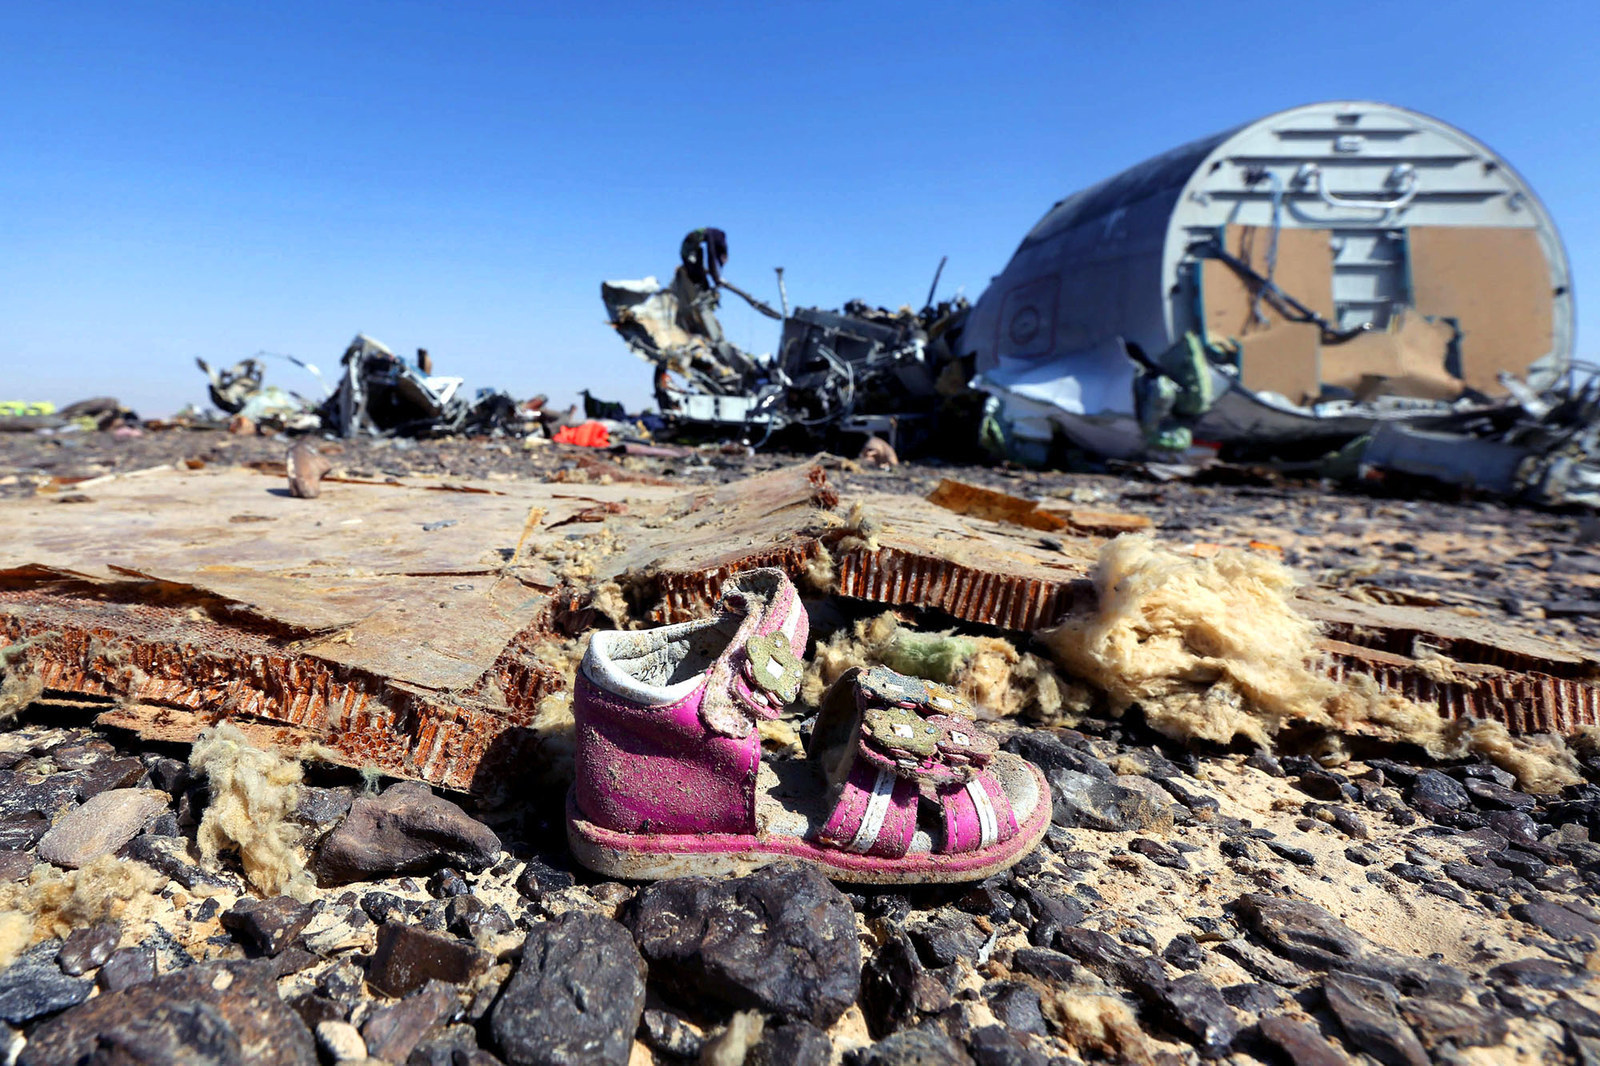 70 Of The Most Touching Photos Taken In 2015 - 70 Of The Most Touching Photos Taken In 2015 - A child's shoe lays by the wreckage of a Russian airliner which crashed in Egypt, killing all 224 on board. Russian and Western governments believe it was brought do